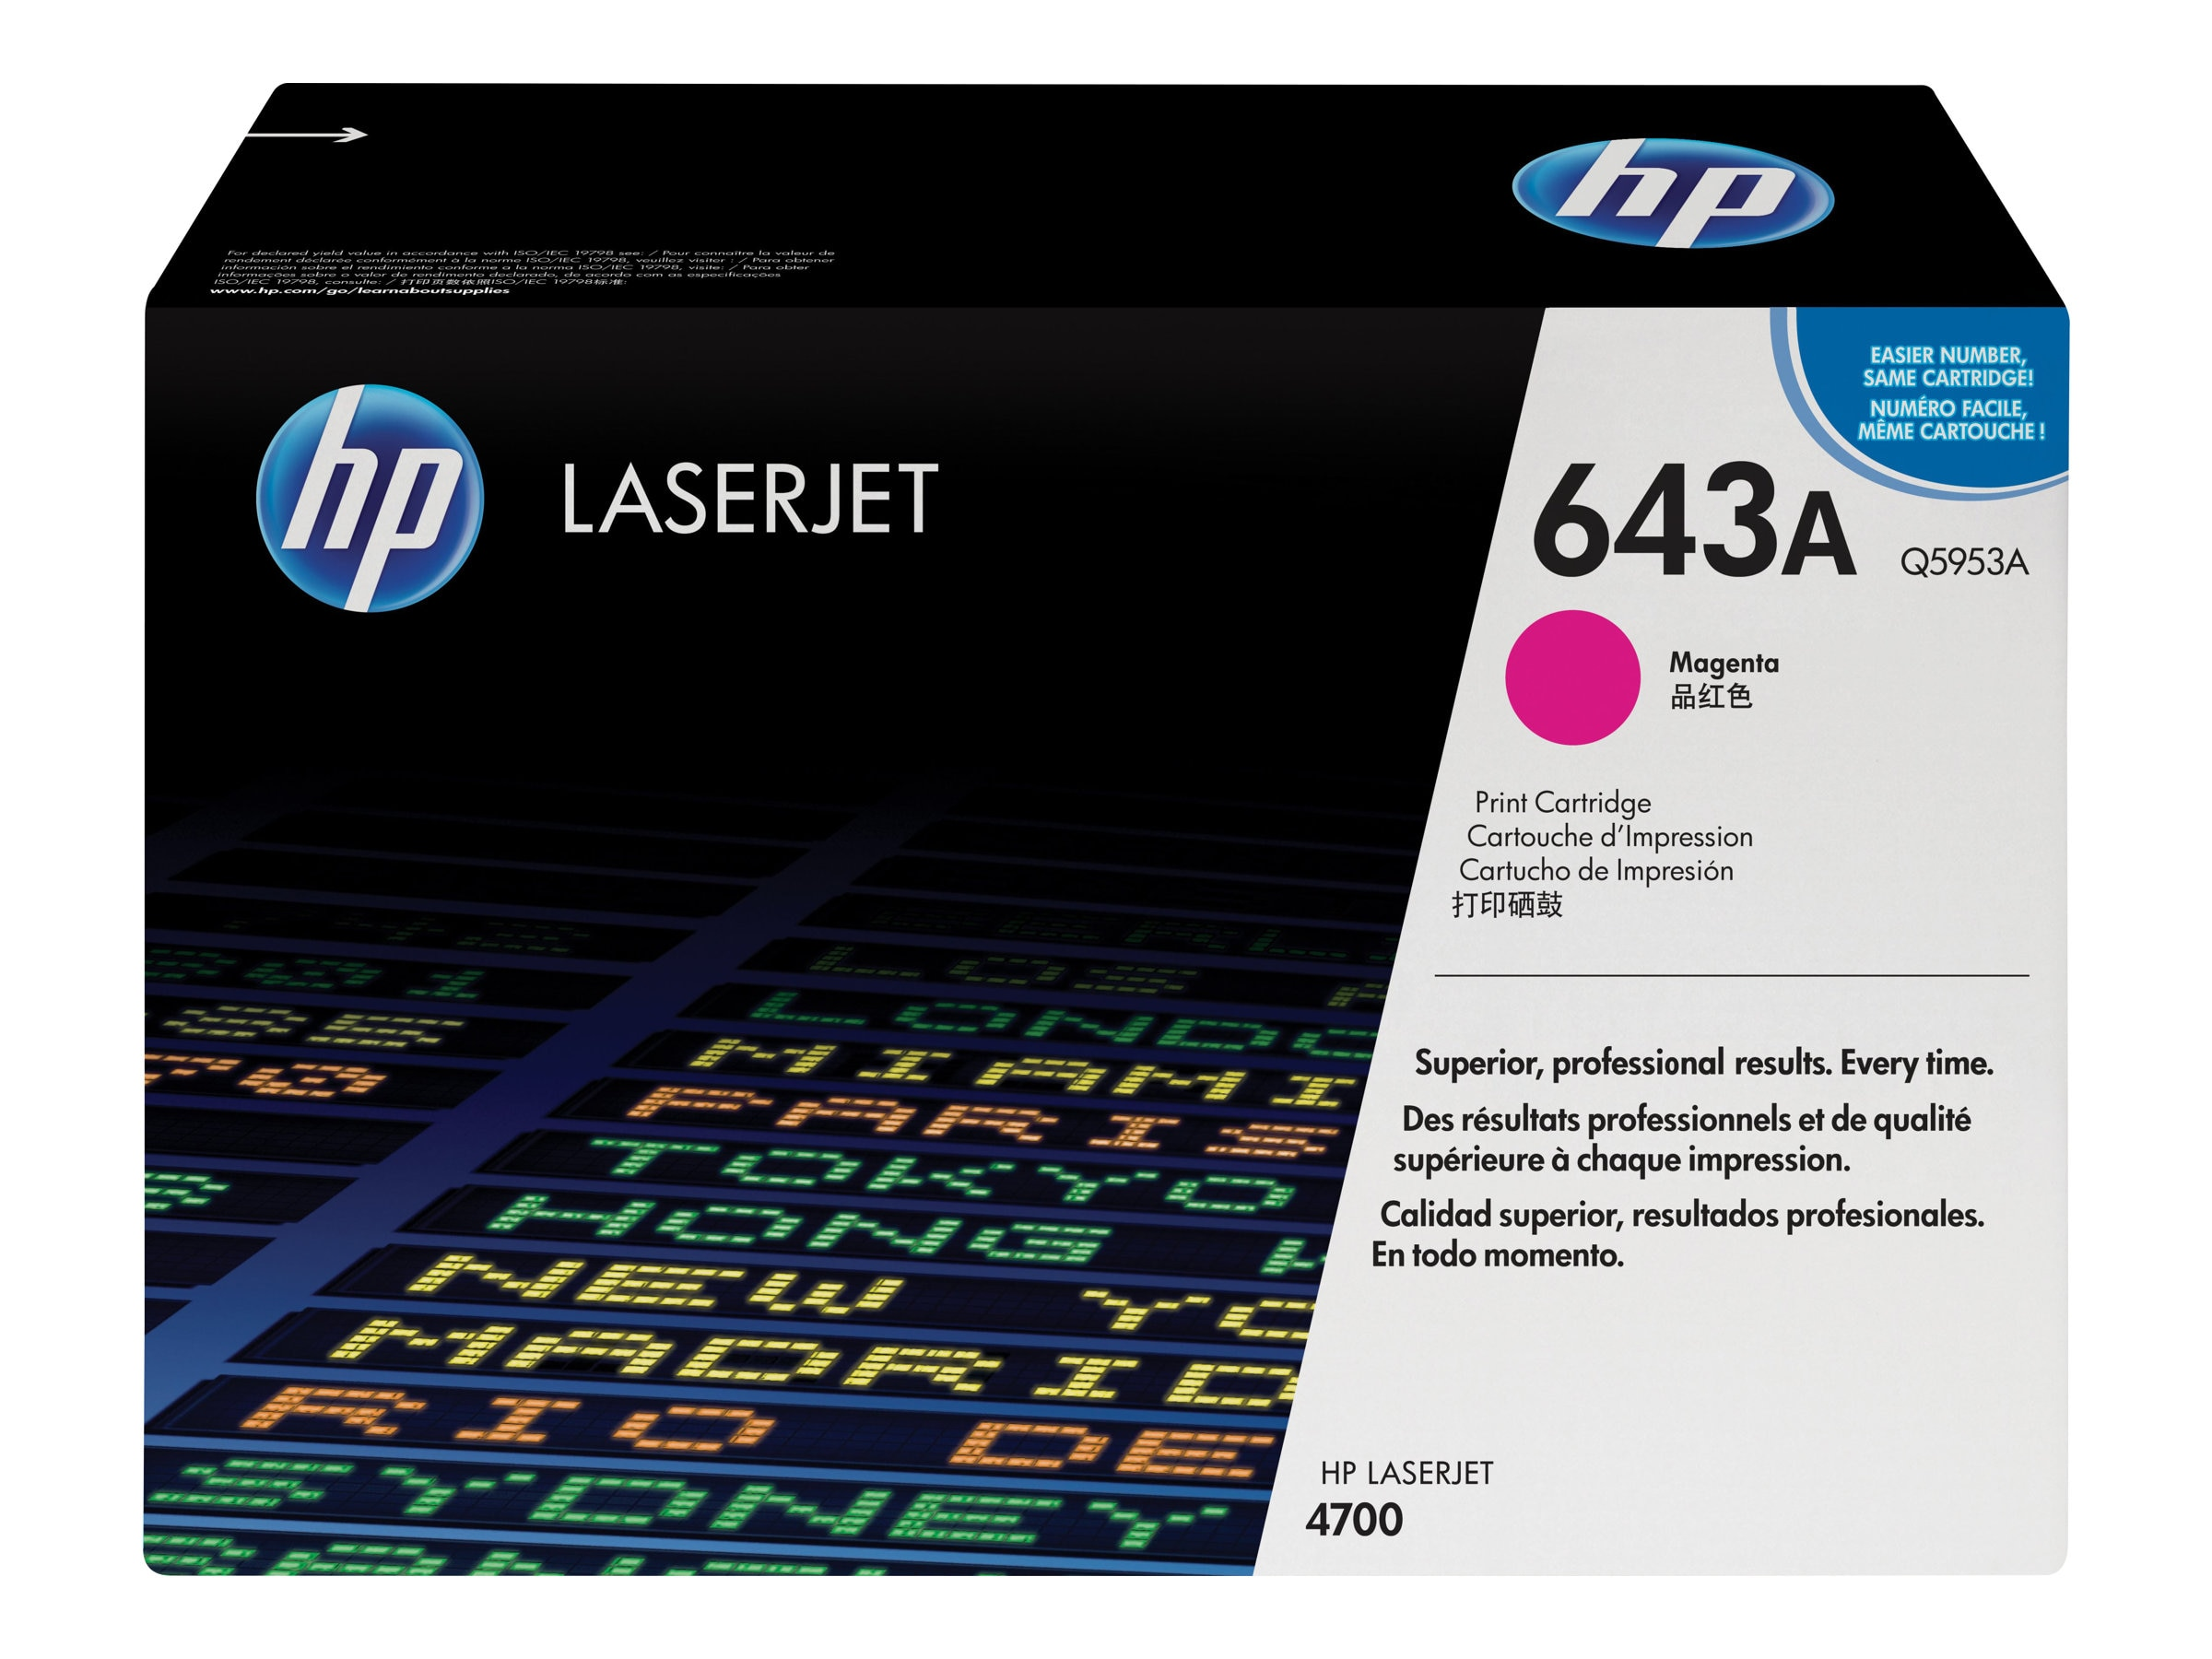 HP 643A (Q5953A) Magenta Original LaserJet Toner Cartridge for HP Color LaserJet 4700 Series Printers